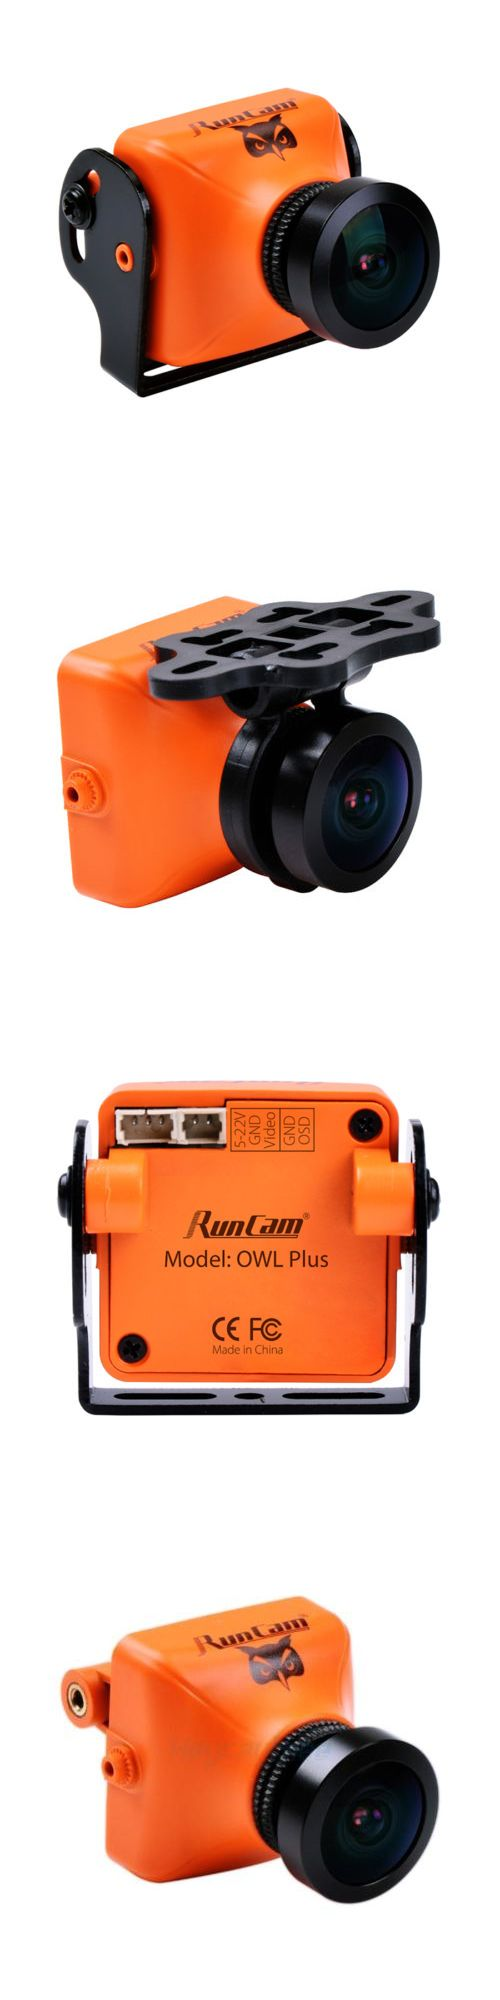 Flight Recorders and Telemetry 183470: Runcam Owl Plus 700Tvl Fpv Camera Mini Wide Angle For Quad Flying Drones 0.0001 -> BUY IT NOW ONLY: $37 on eBay!